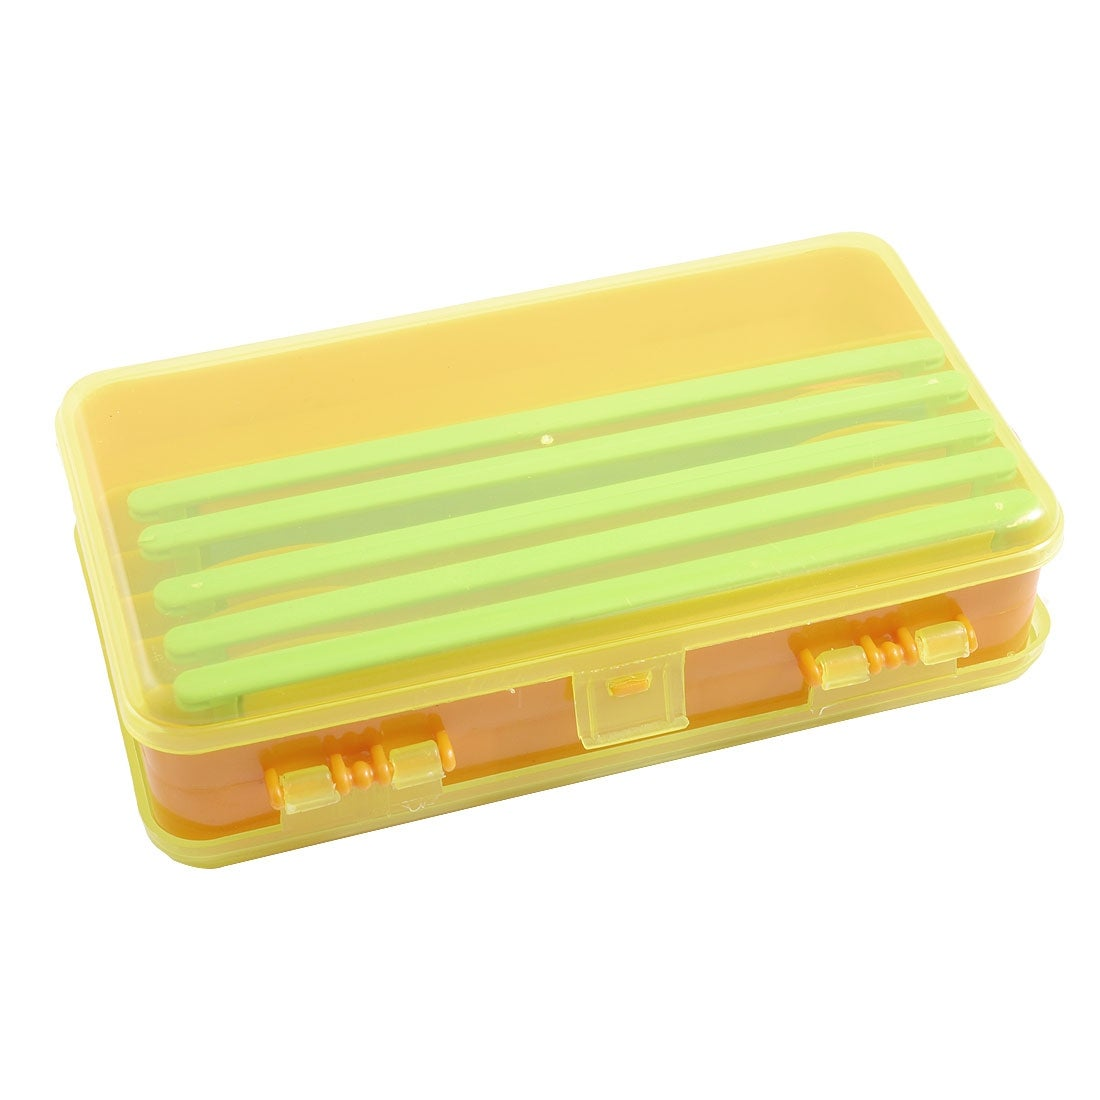 Unique Bargains Unique Bargains Double Sides Fishing Tackle Box Hook Lure Case with 5 Line Winders